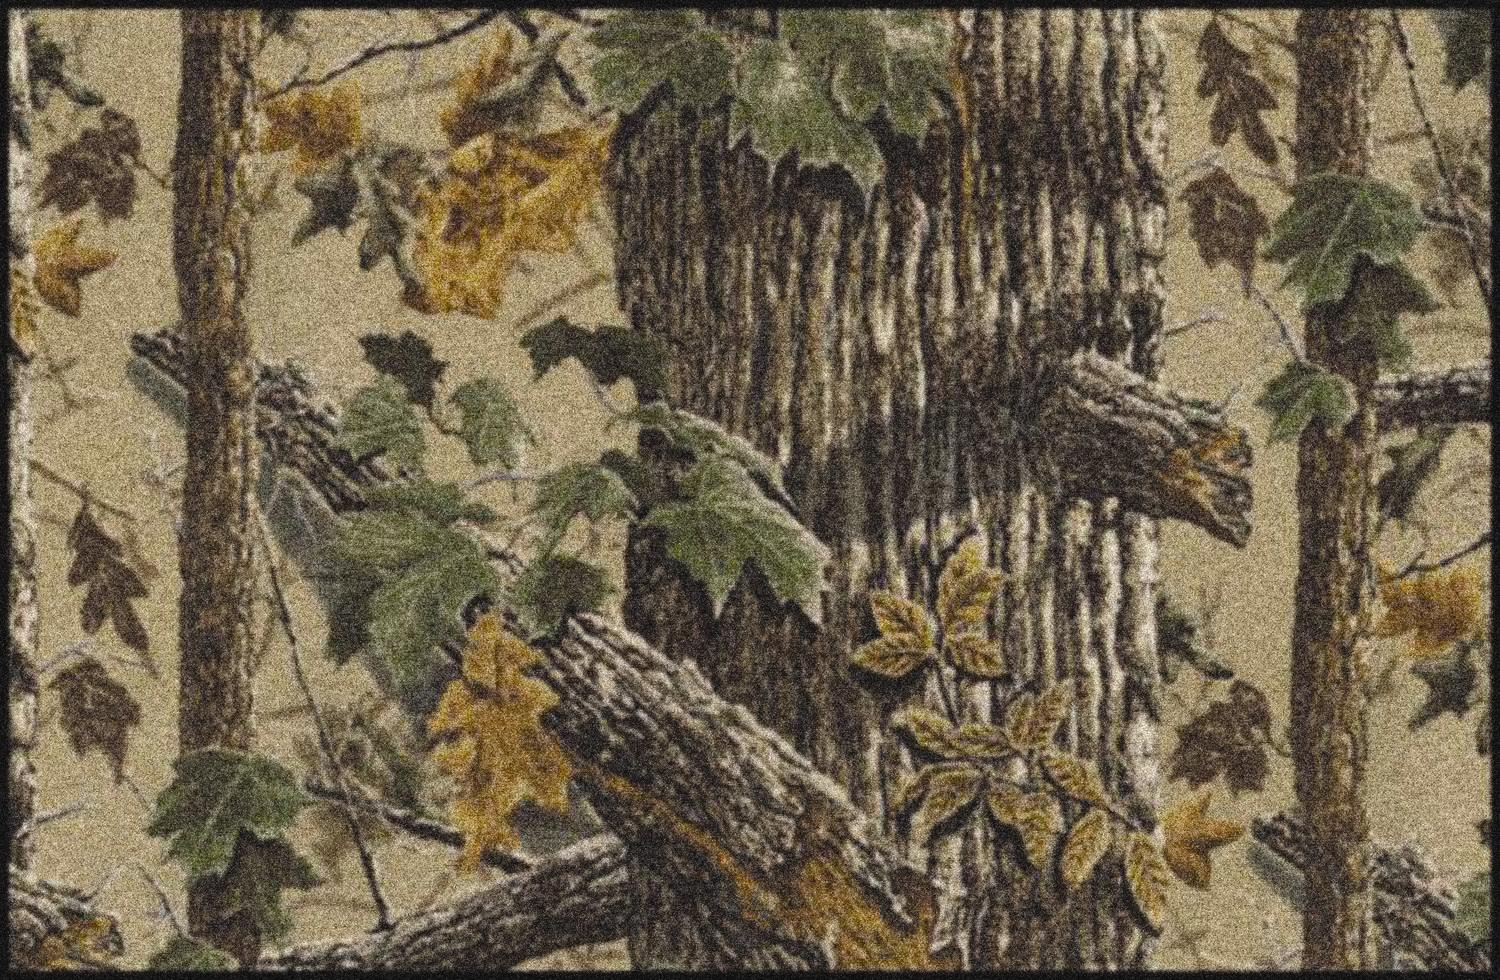 X Tra Brown Realtree Tree Amp Leaves Camouflage Nylon Area Rug